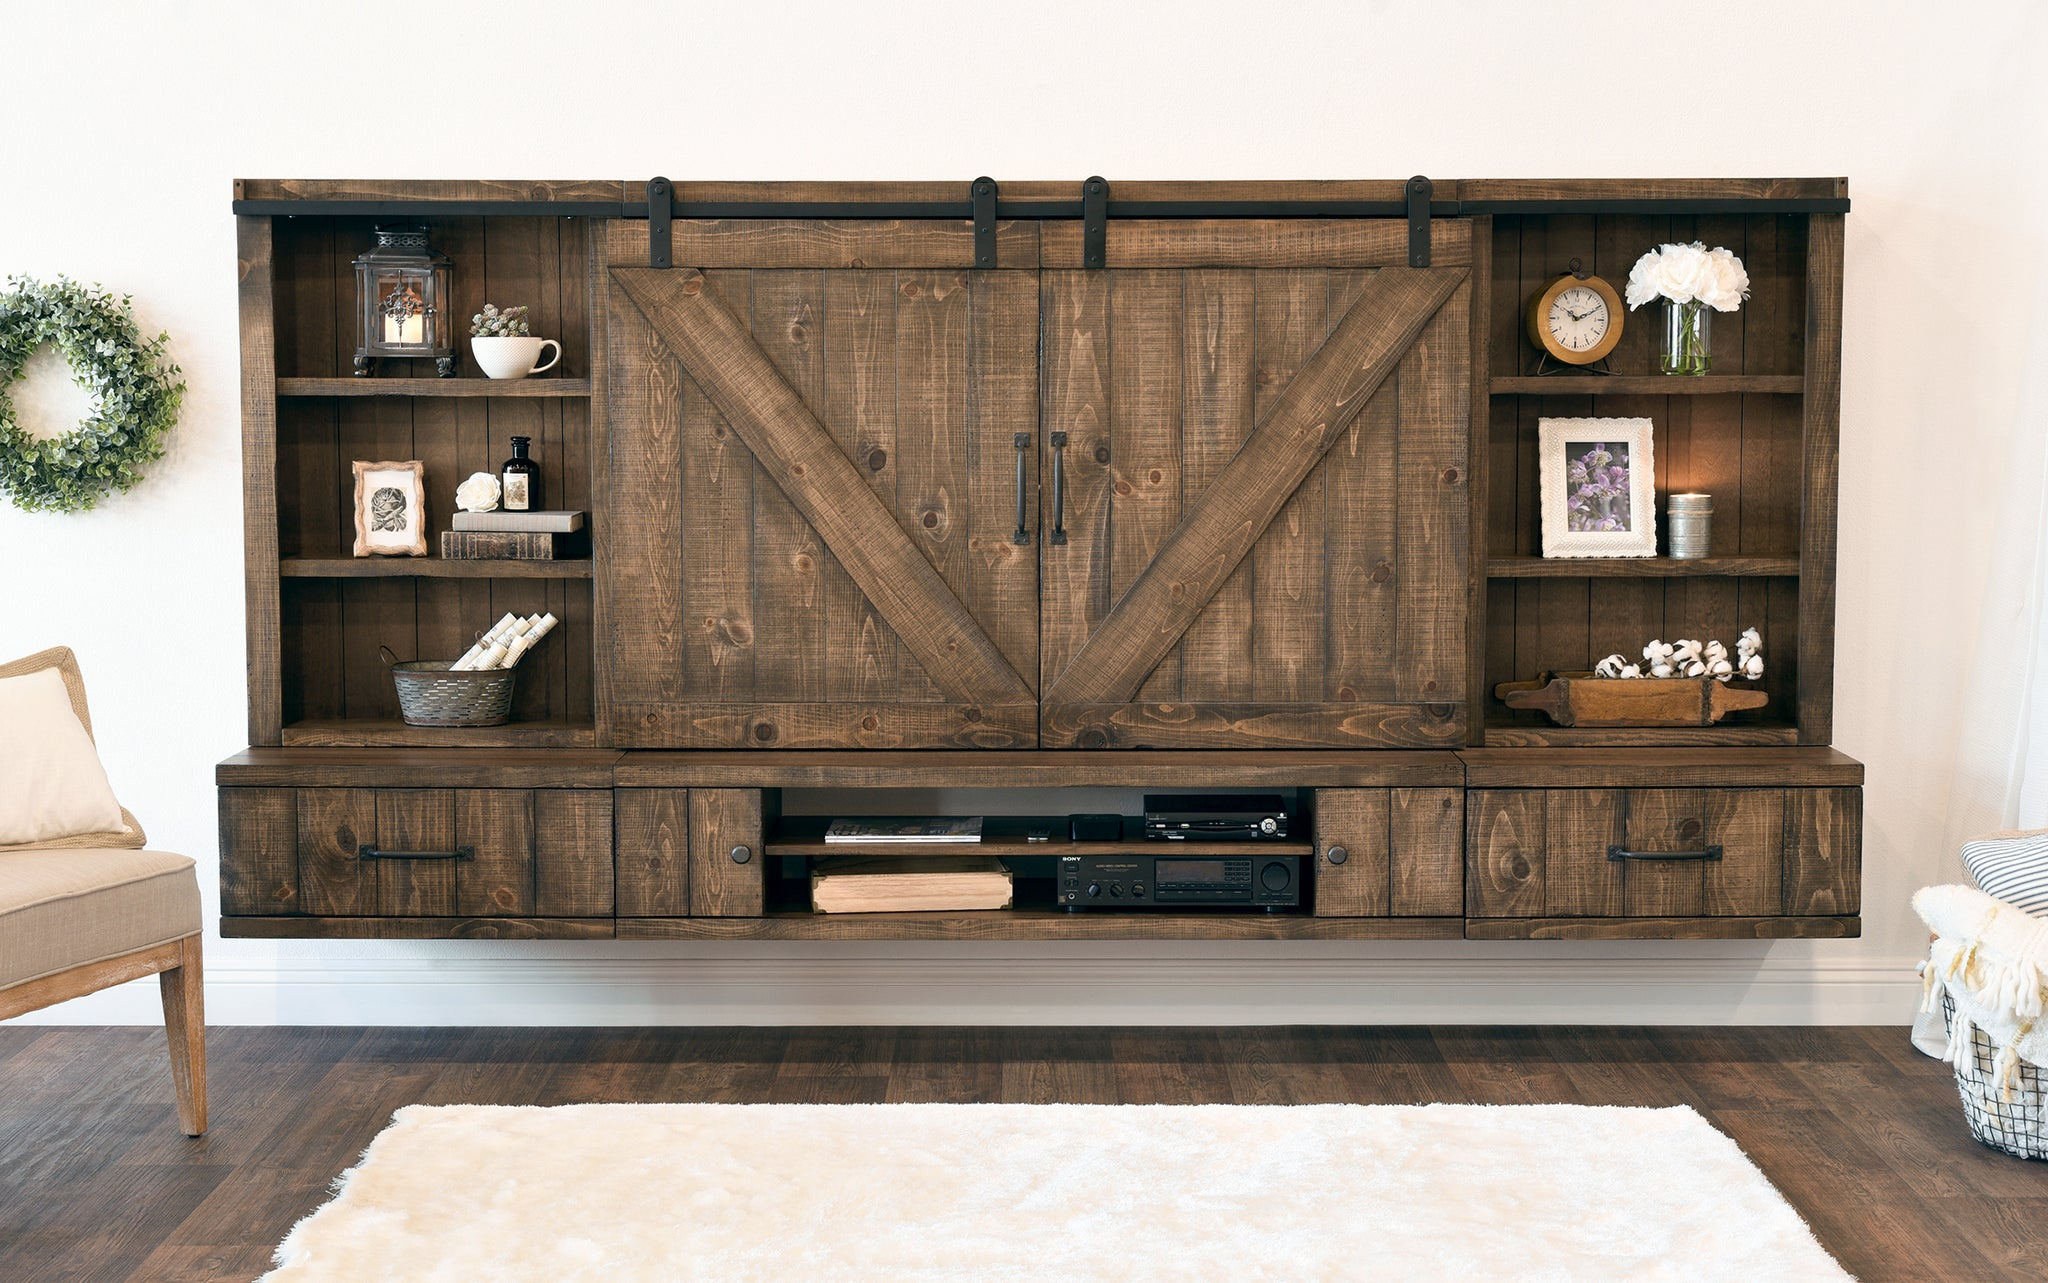 barn door entertainment center Farmhouse Barn Door Entertainment Center Floating TV Stand   Spice  barn door entertainment center